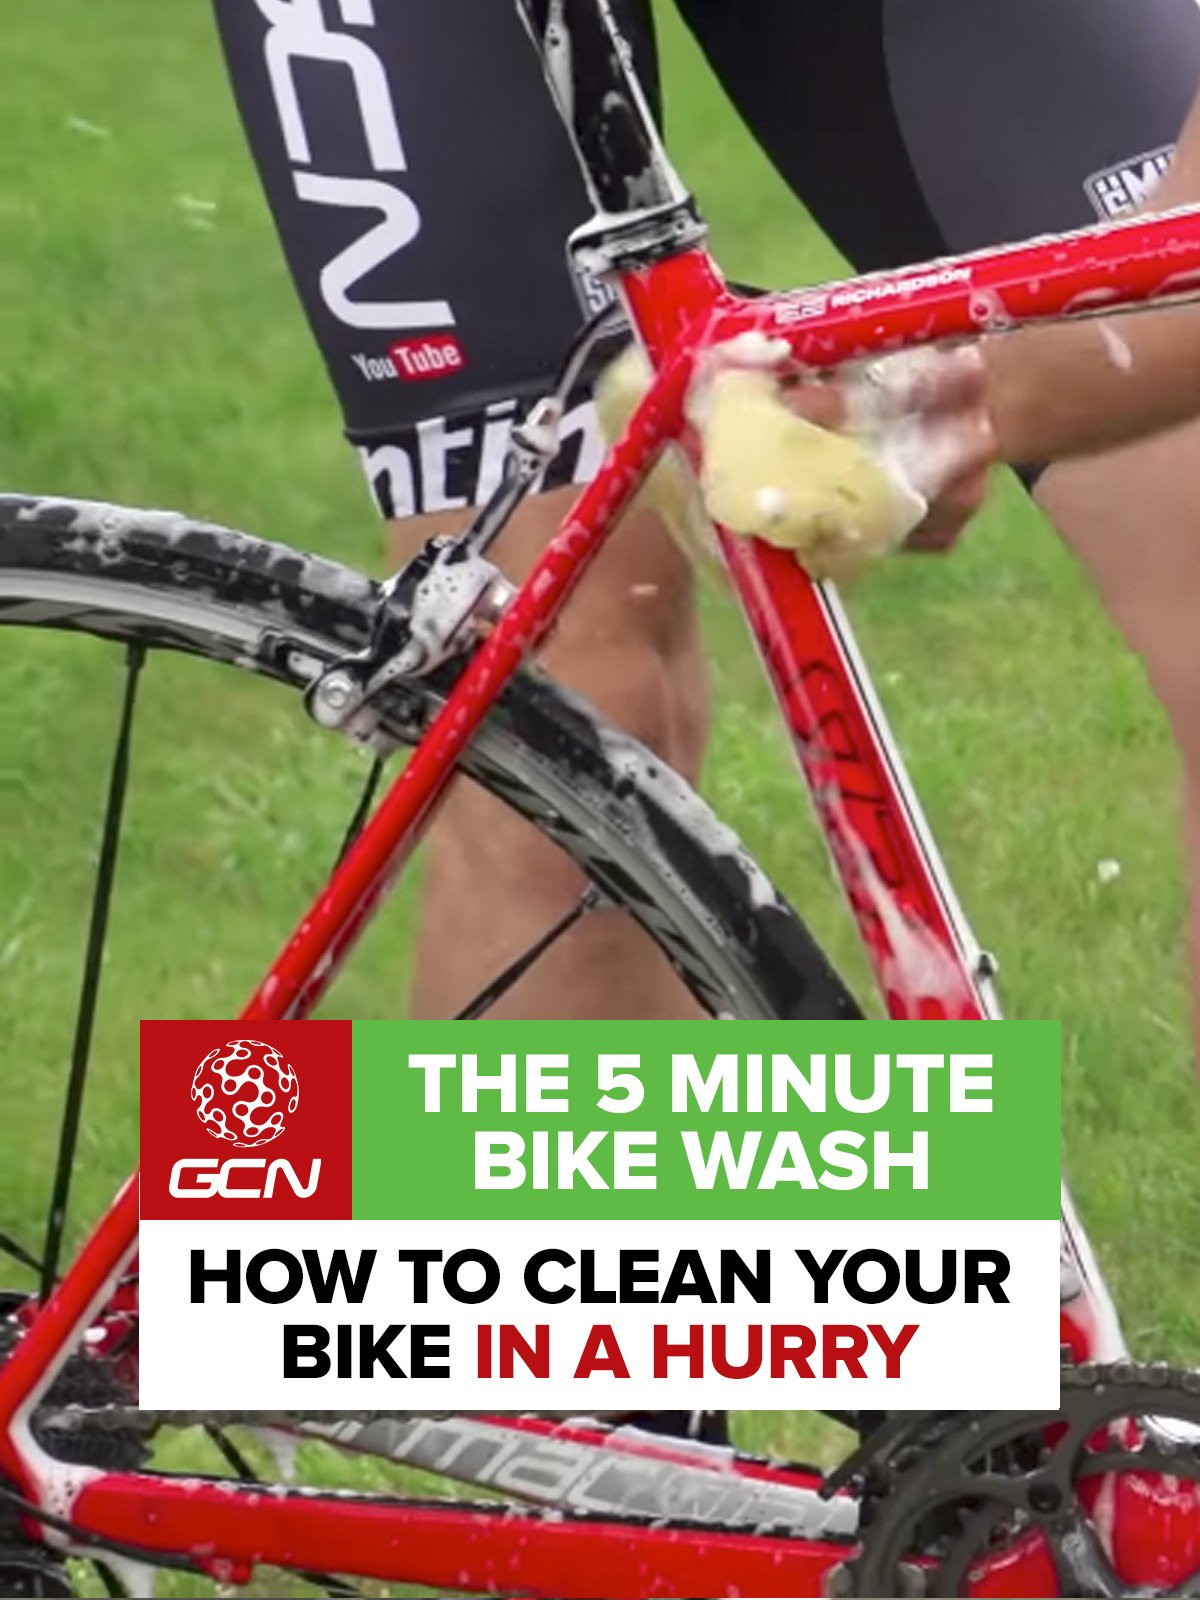 The 5 Minute Bike Wash